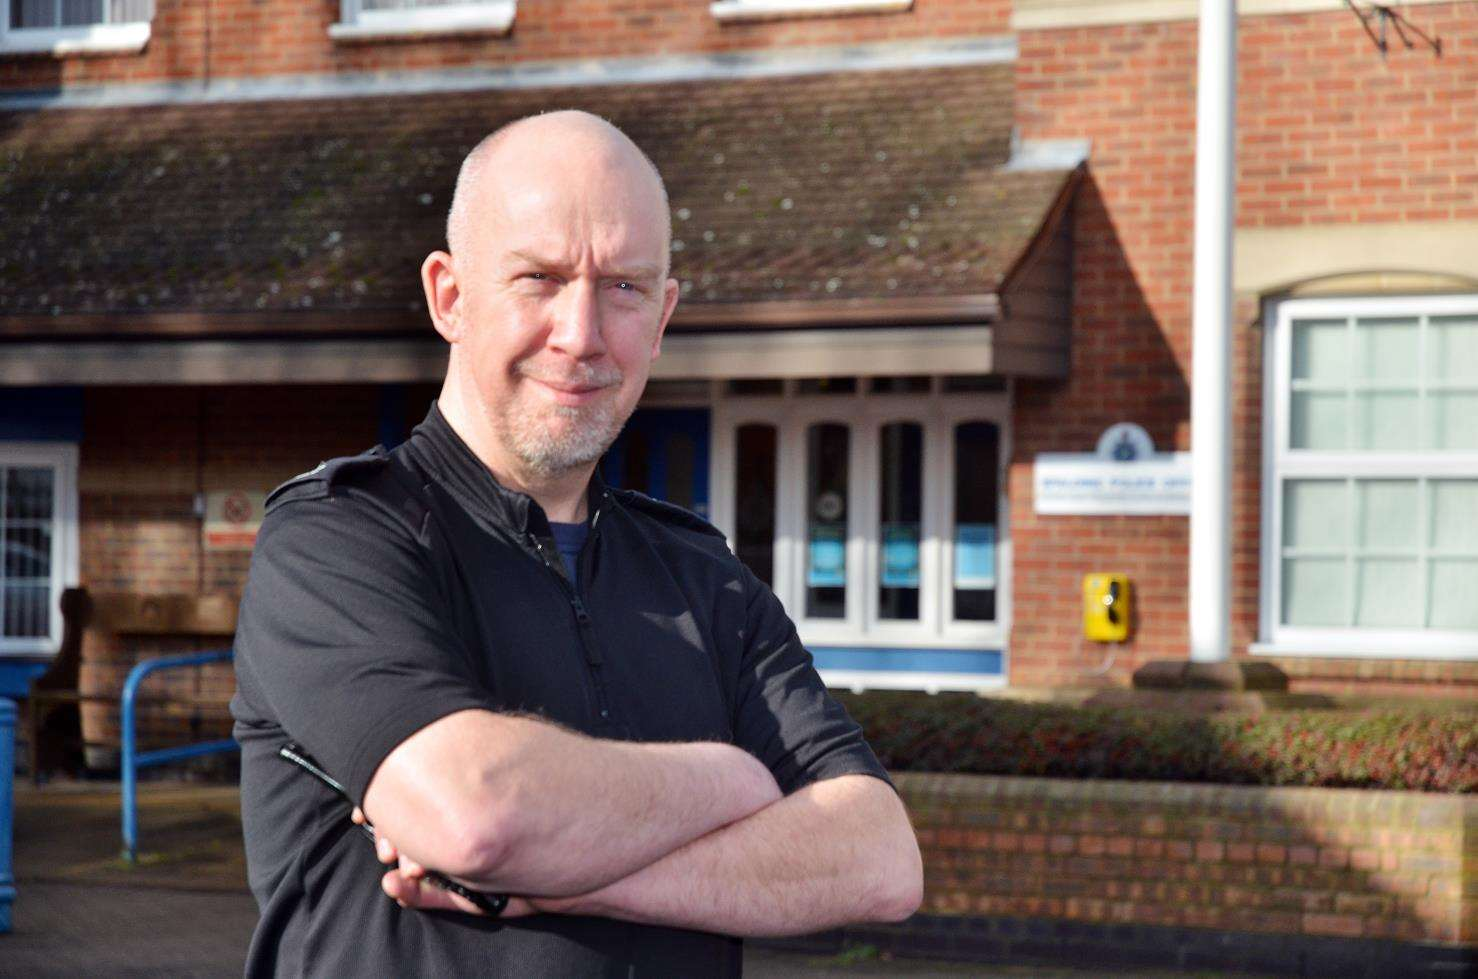 New Spalding community policing sergeant Rick Mosley outside the town's police station. Photo (TIM WILSON): SG-040219-030TW